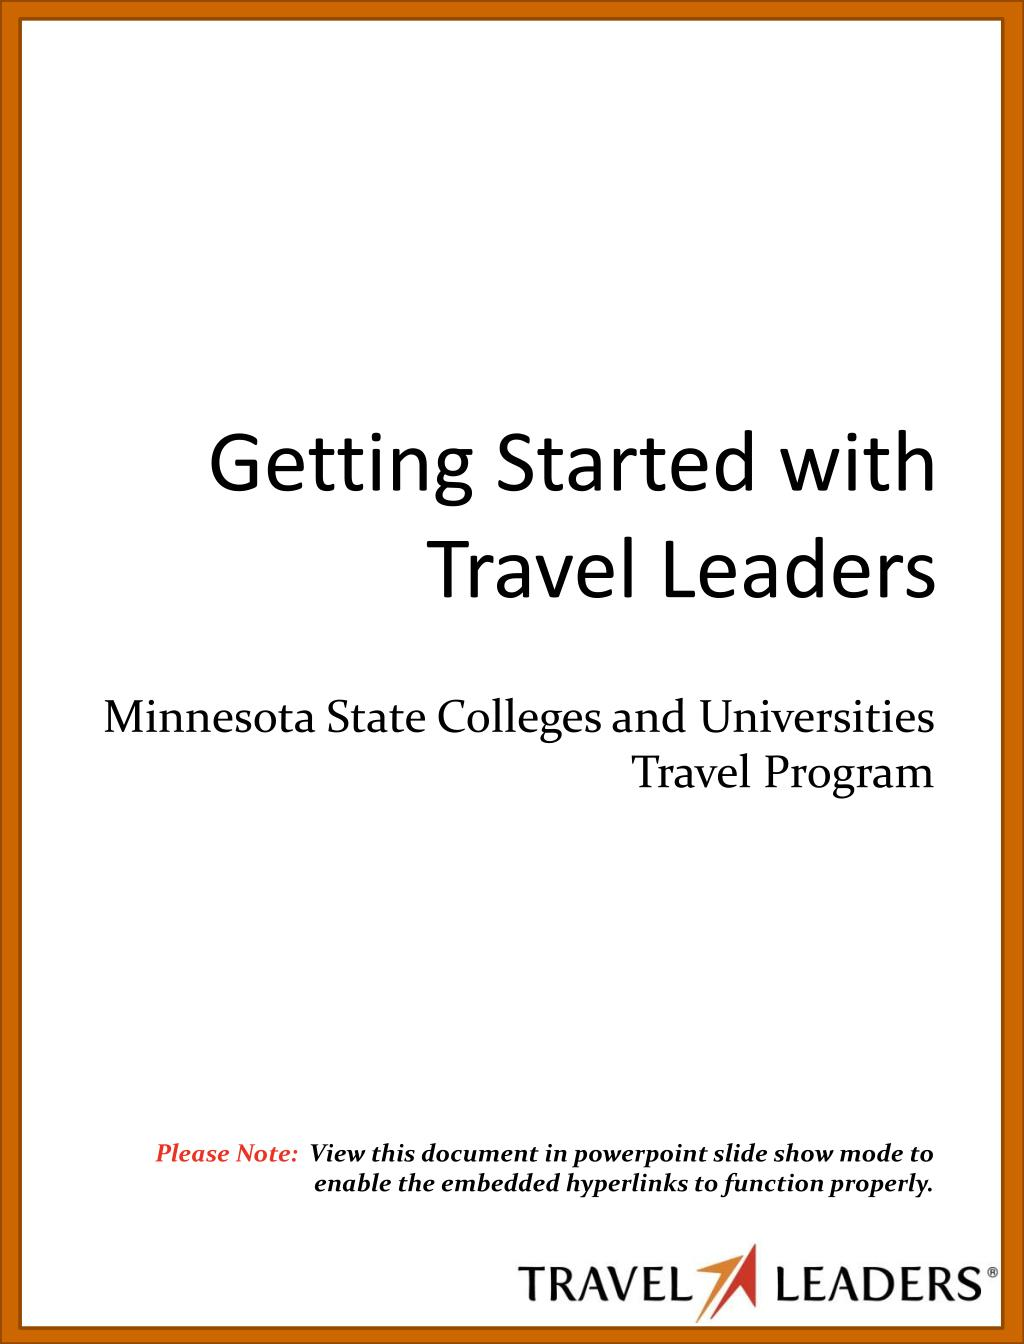 Getting Started with Travel Leaders